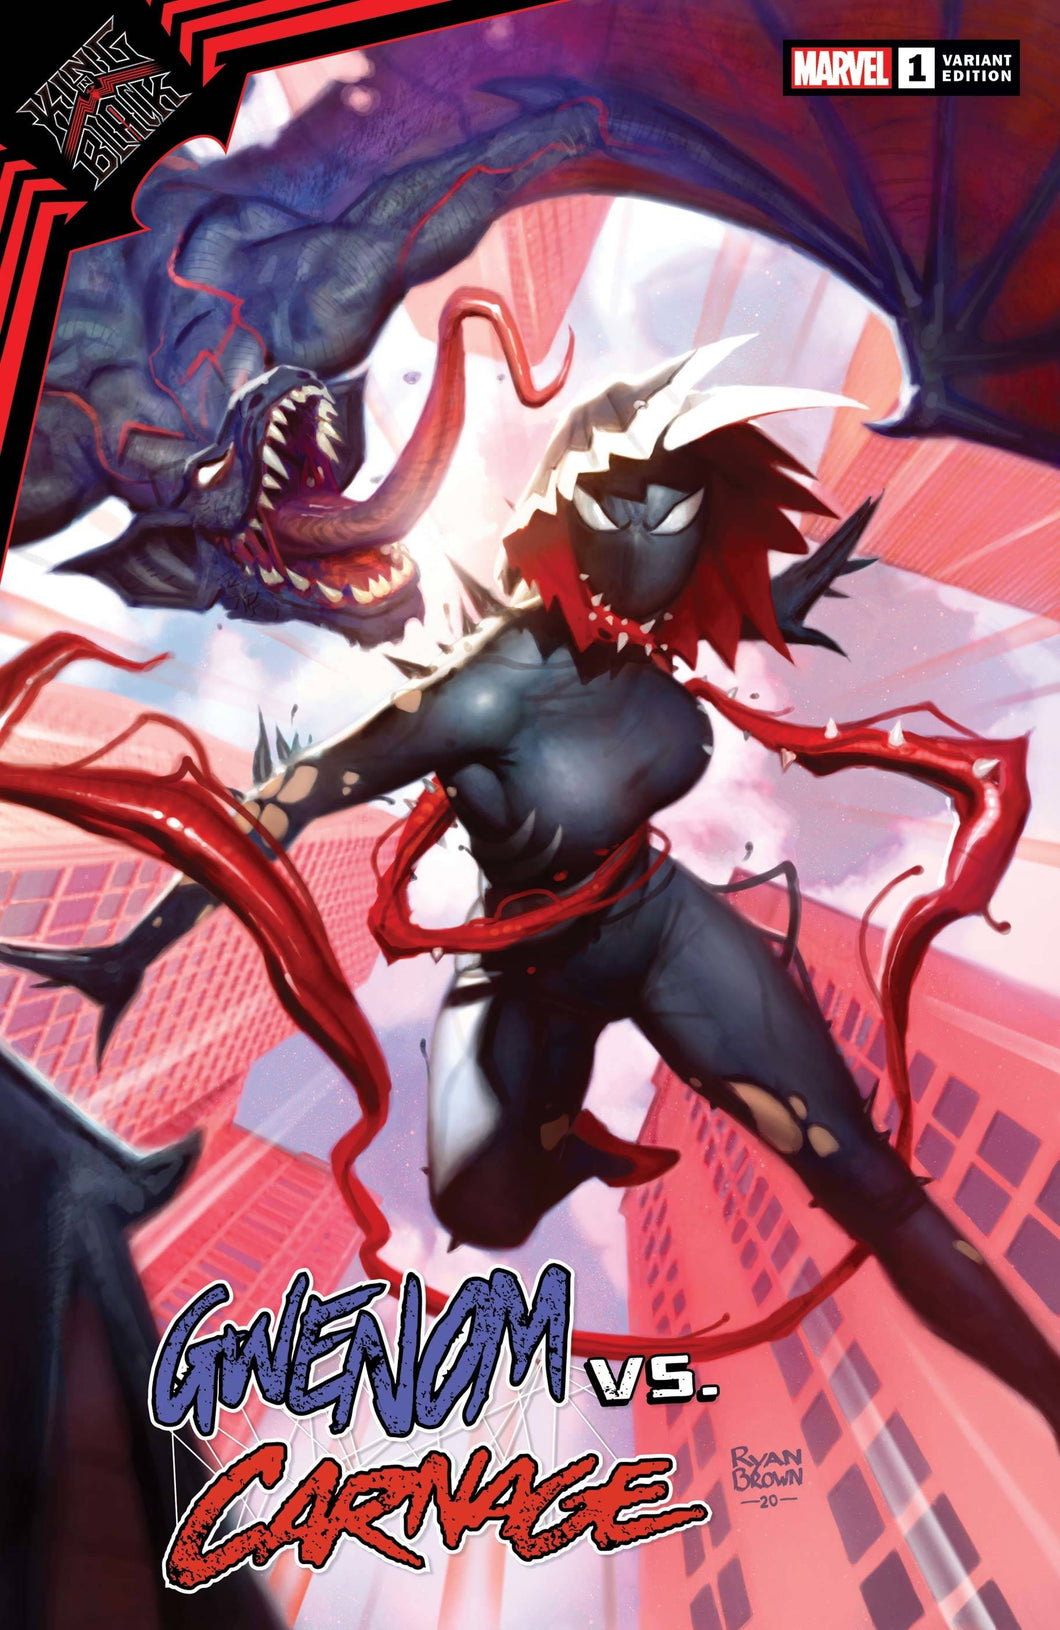 King in Black Gwenom vs Carnage #1 Ryan Brown Variant (2021)